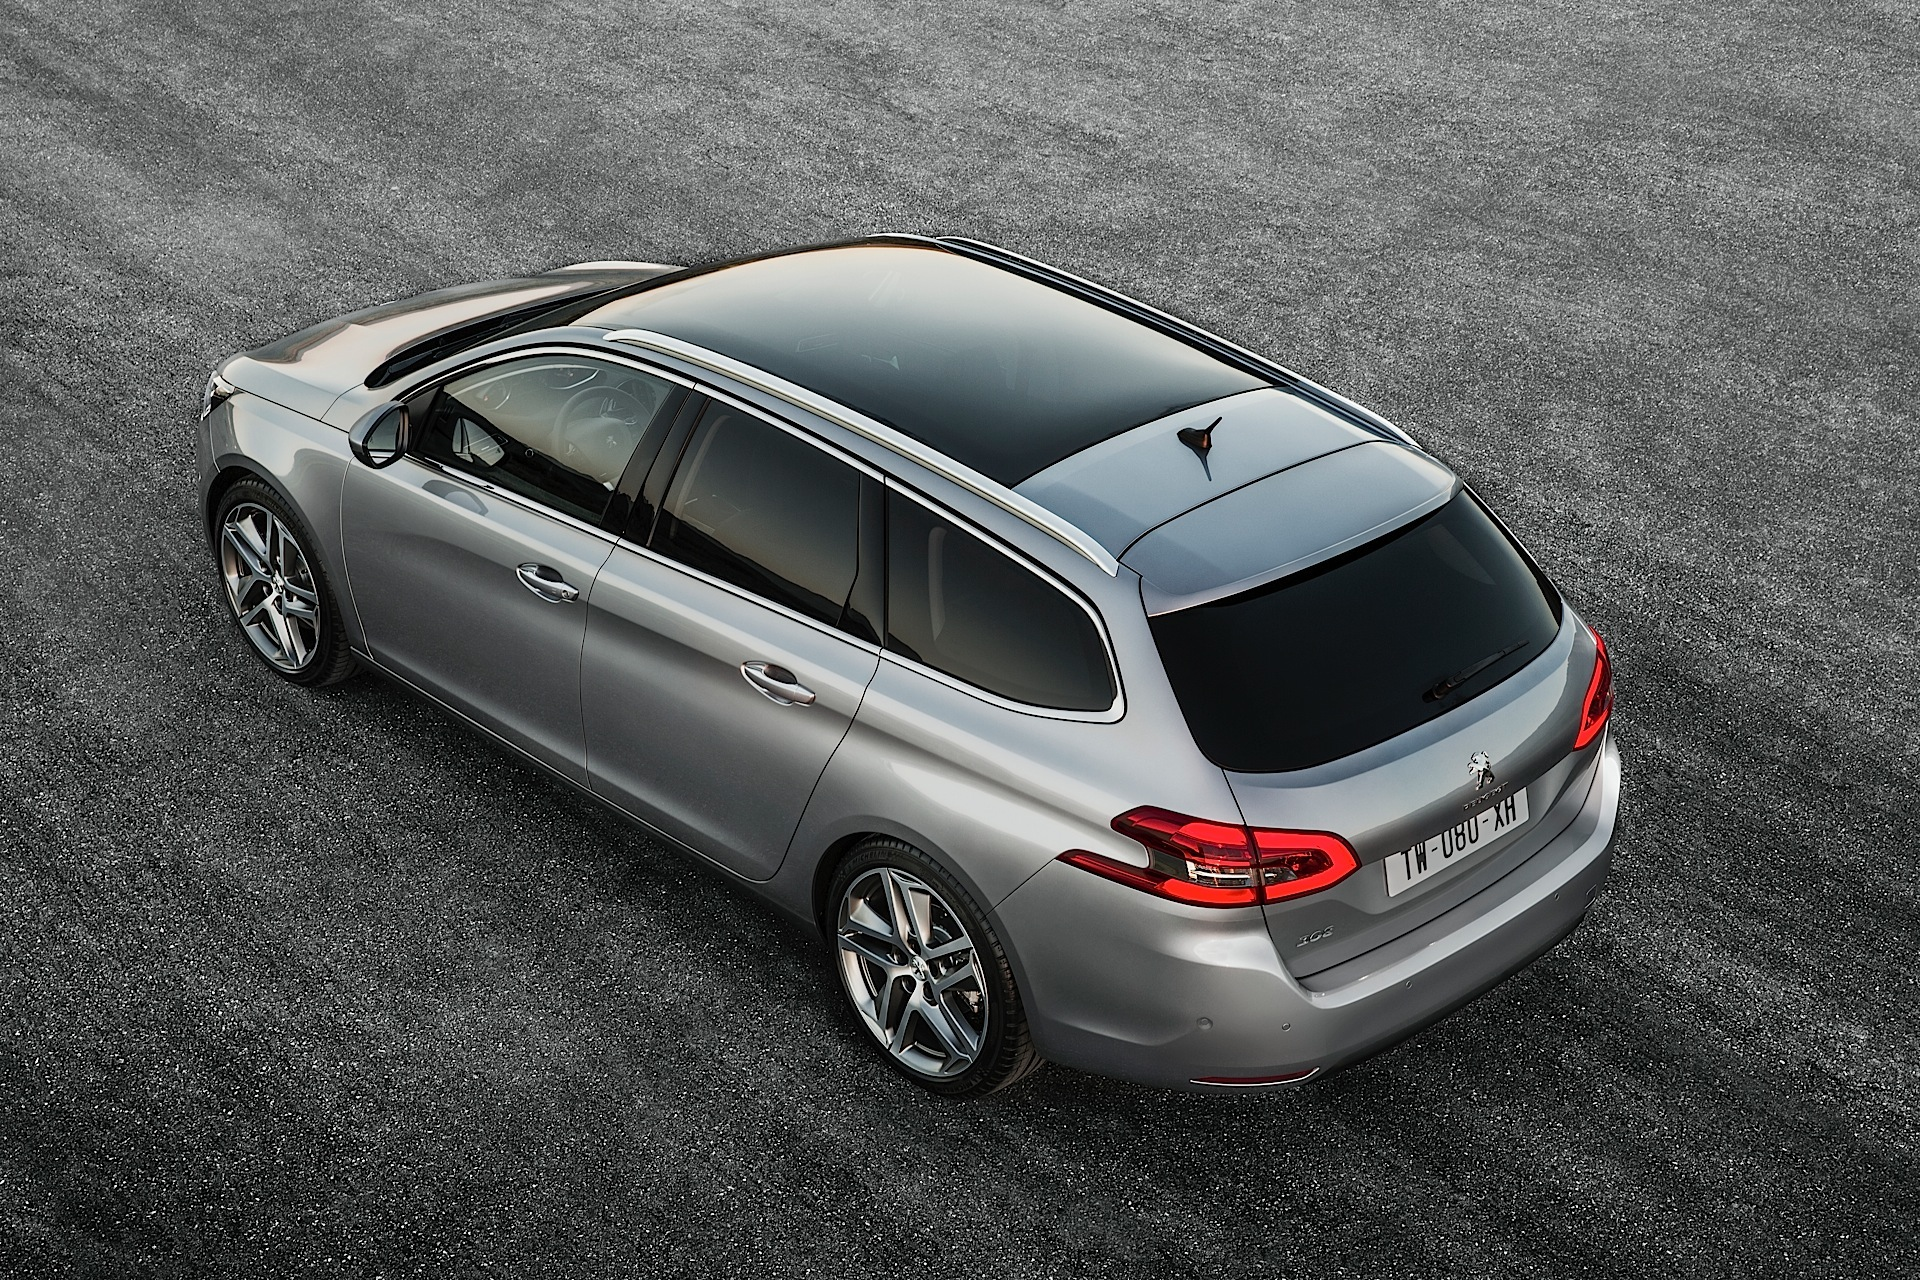 peugeot 308 sw specs 2014 2015 2016 2017 autoevolution. Black Bedroom Furniture Sets. Home Design Ideas